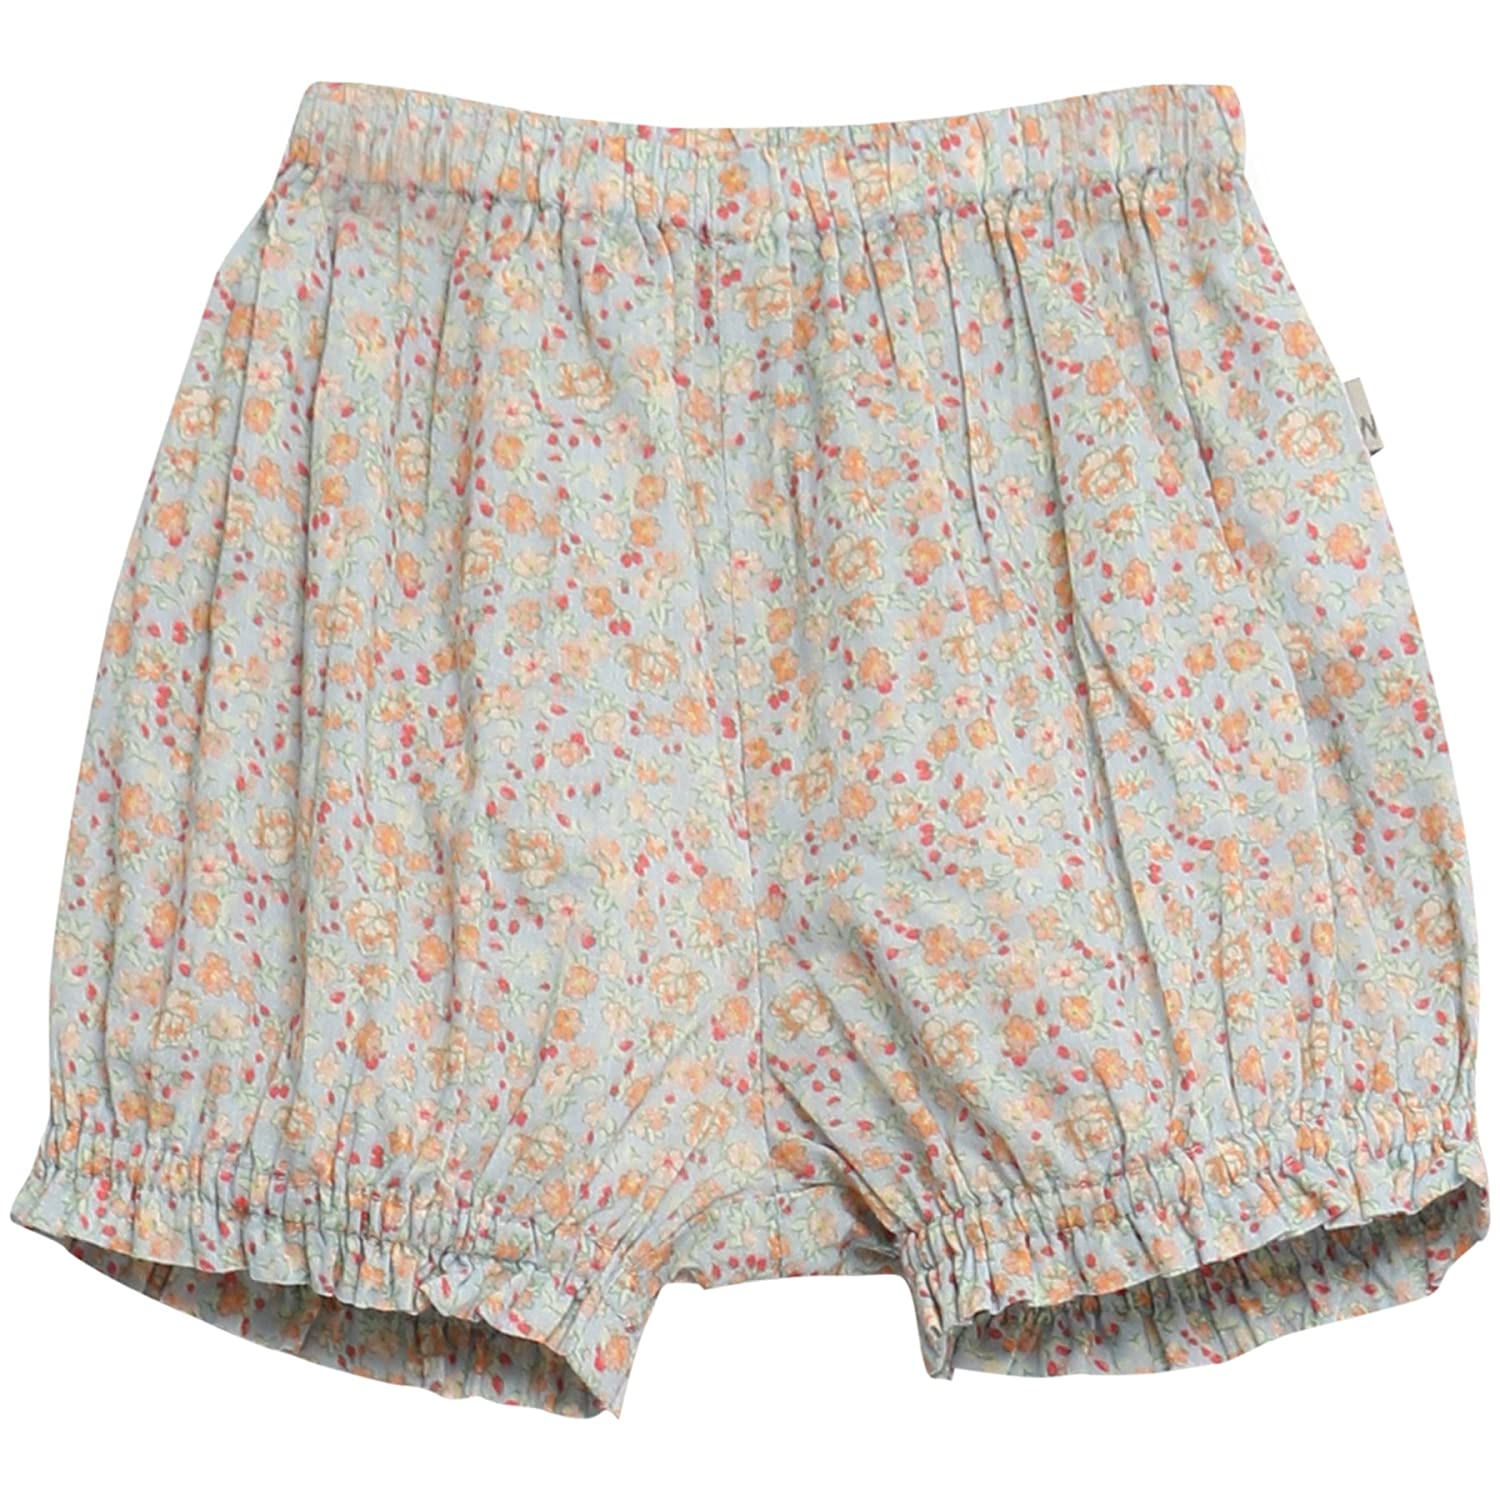 Wheat Baby Girls' Nappy Pants Addy Shorts Baby Shorts Nappy Pants Addy 5043-27